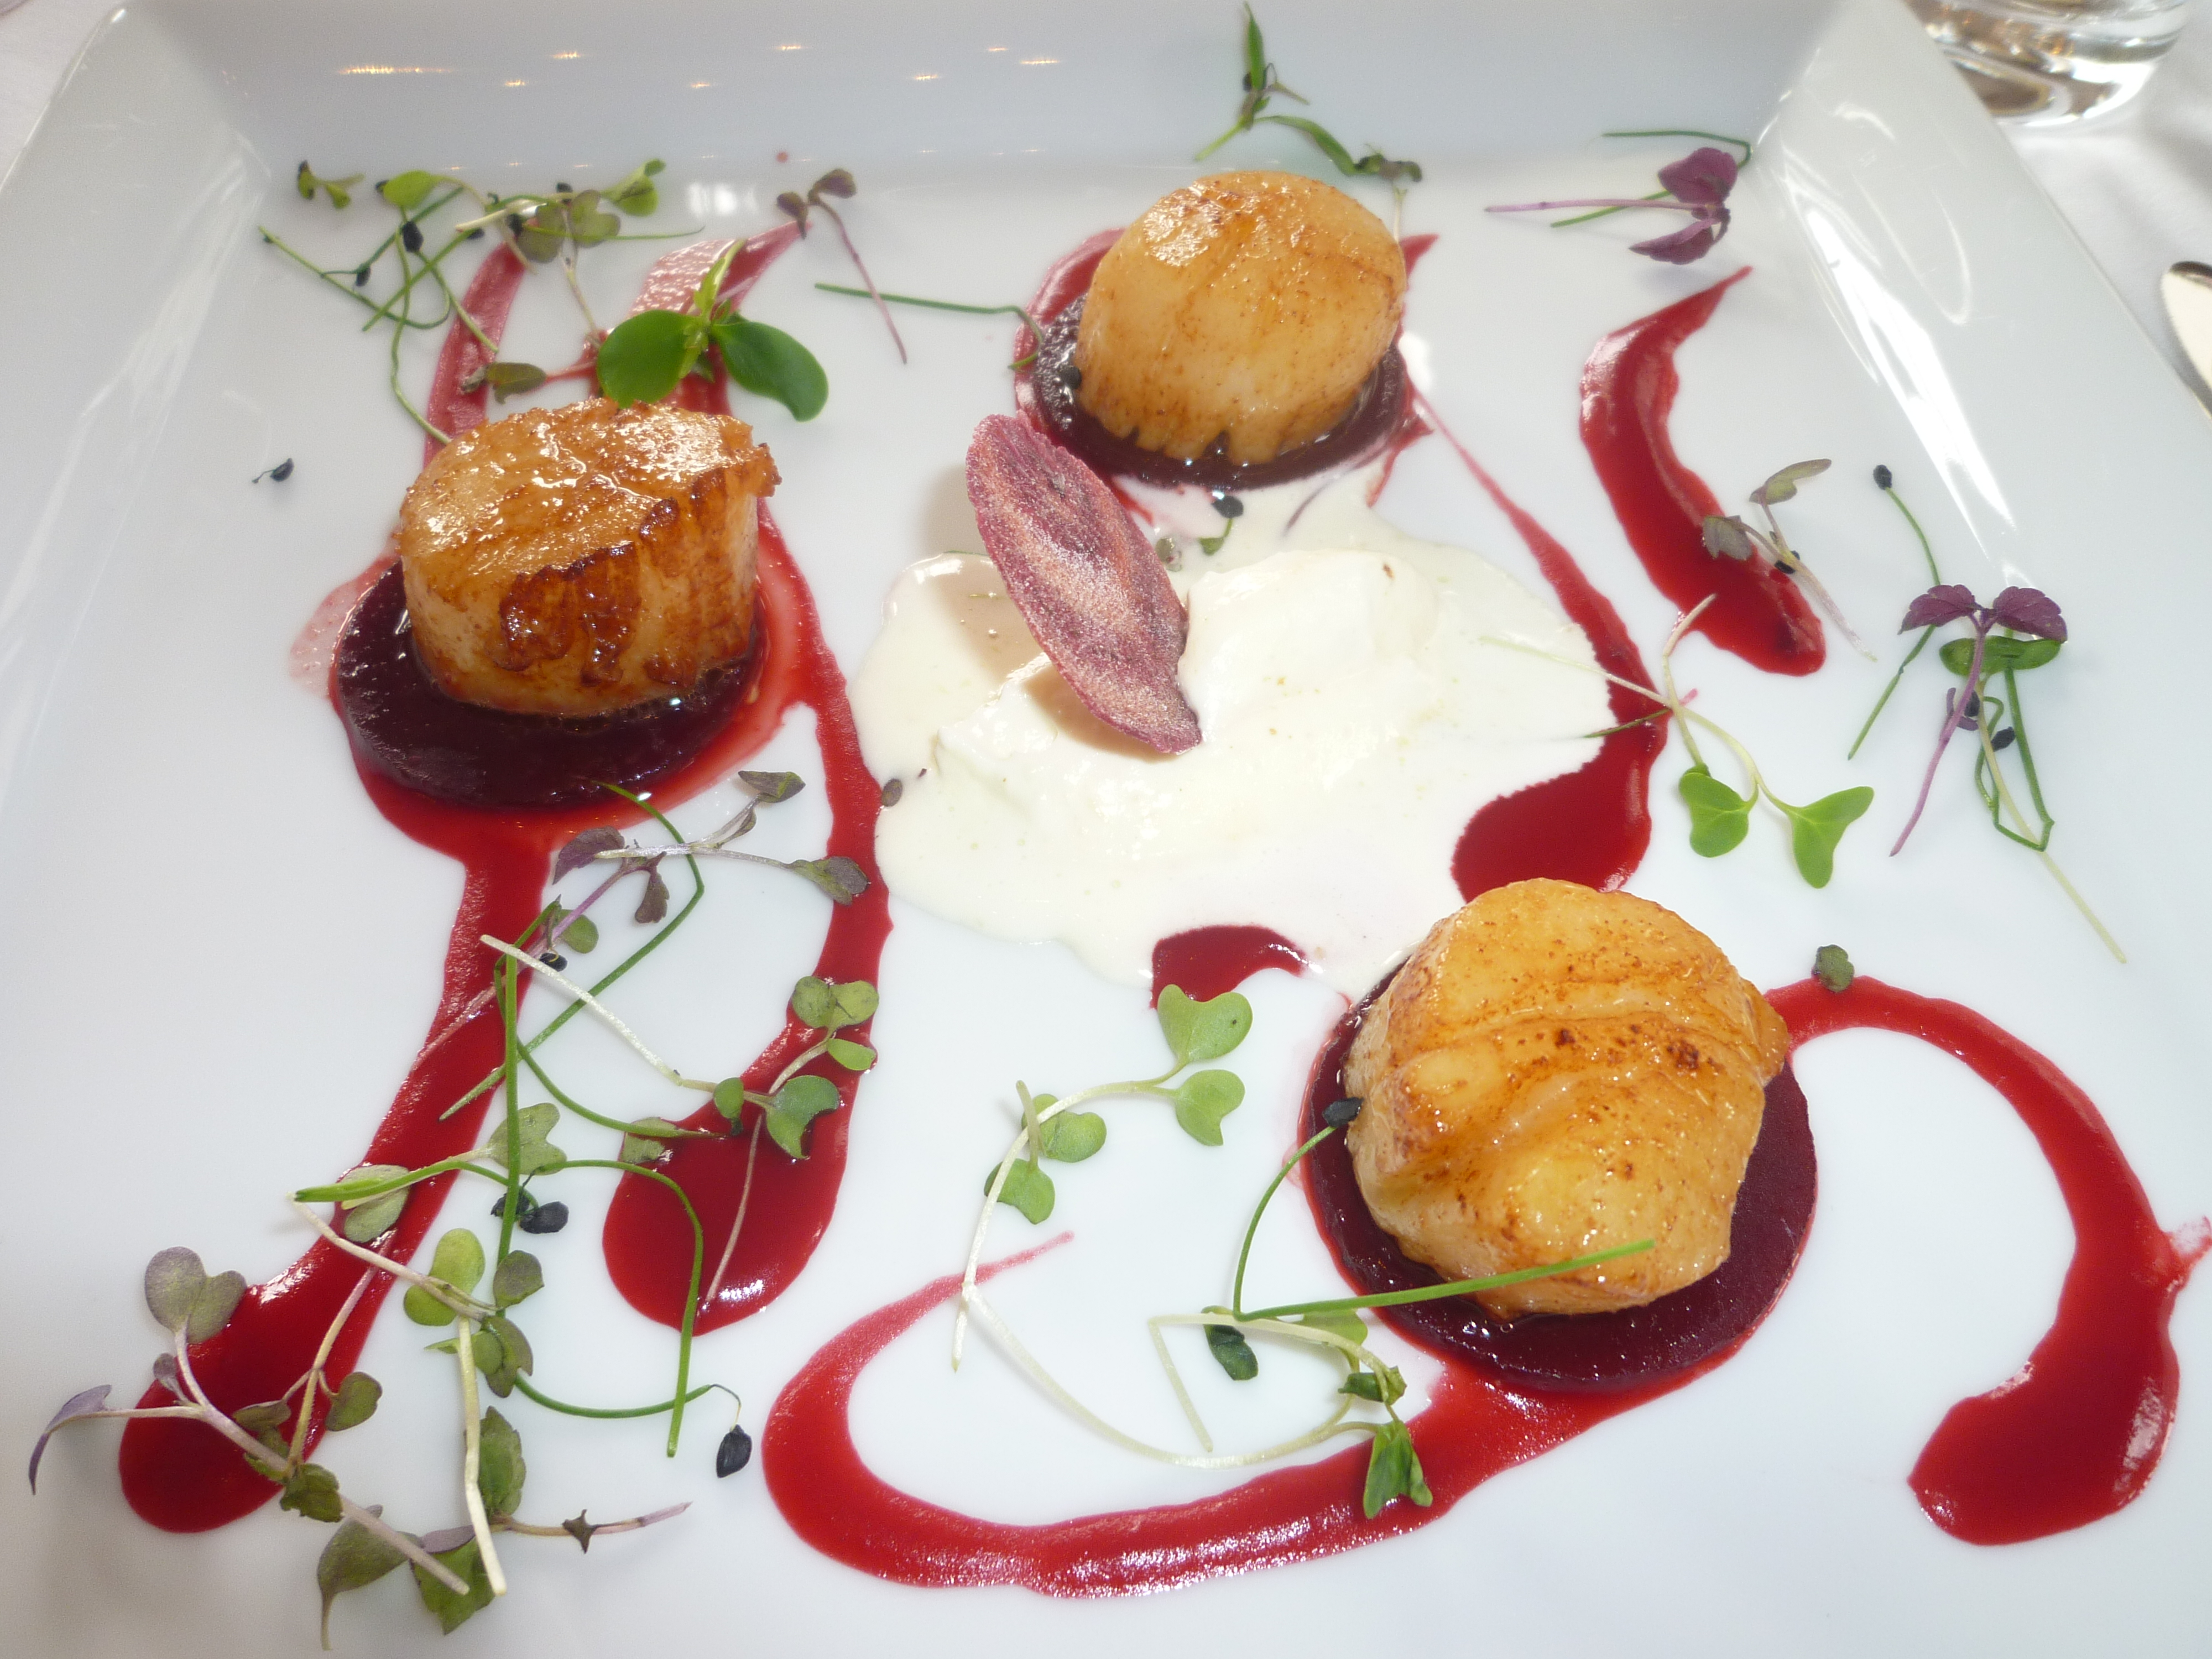 Roasted scallops with beetroot and horseradish (photo: Sarah Gibbons)